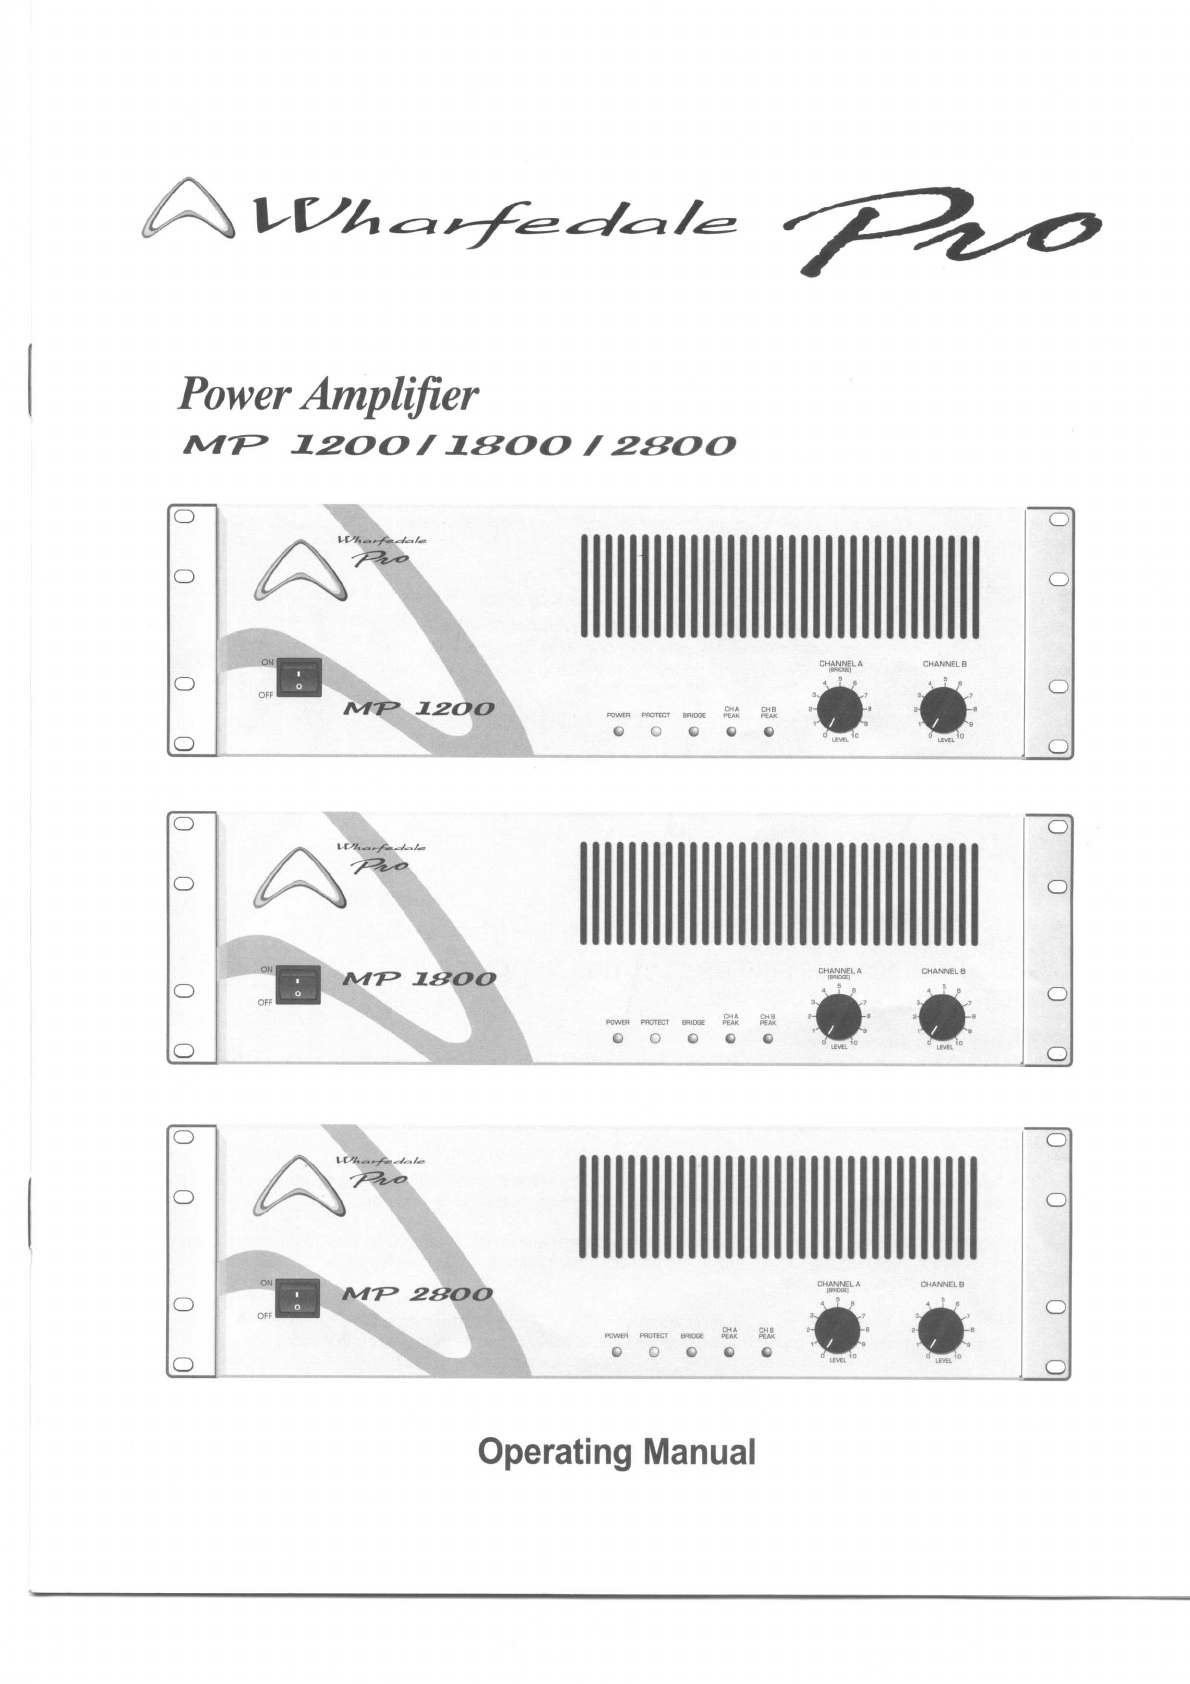 Wharfedale Stereo Amplifier MP 1800 User Guide